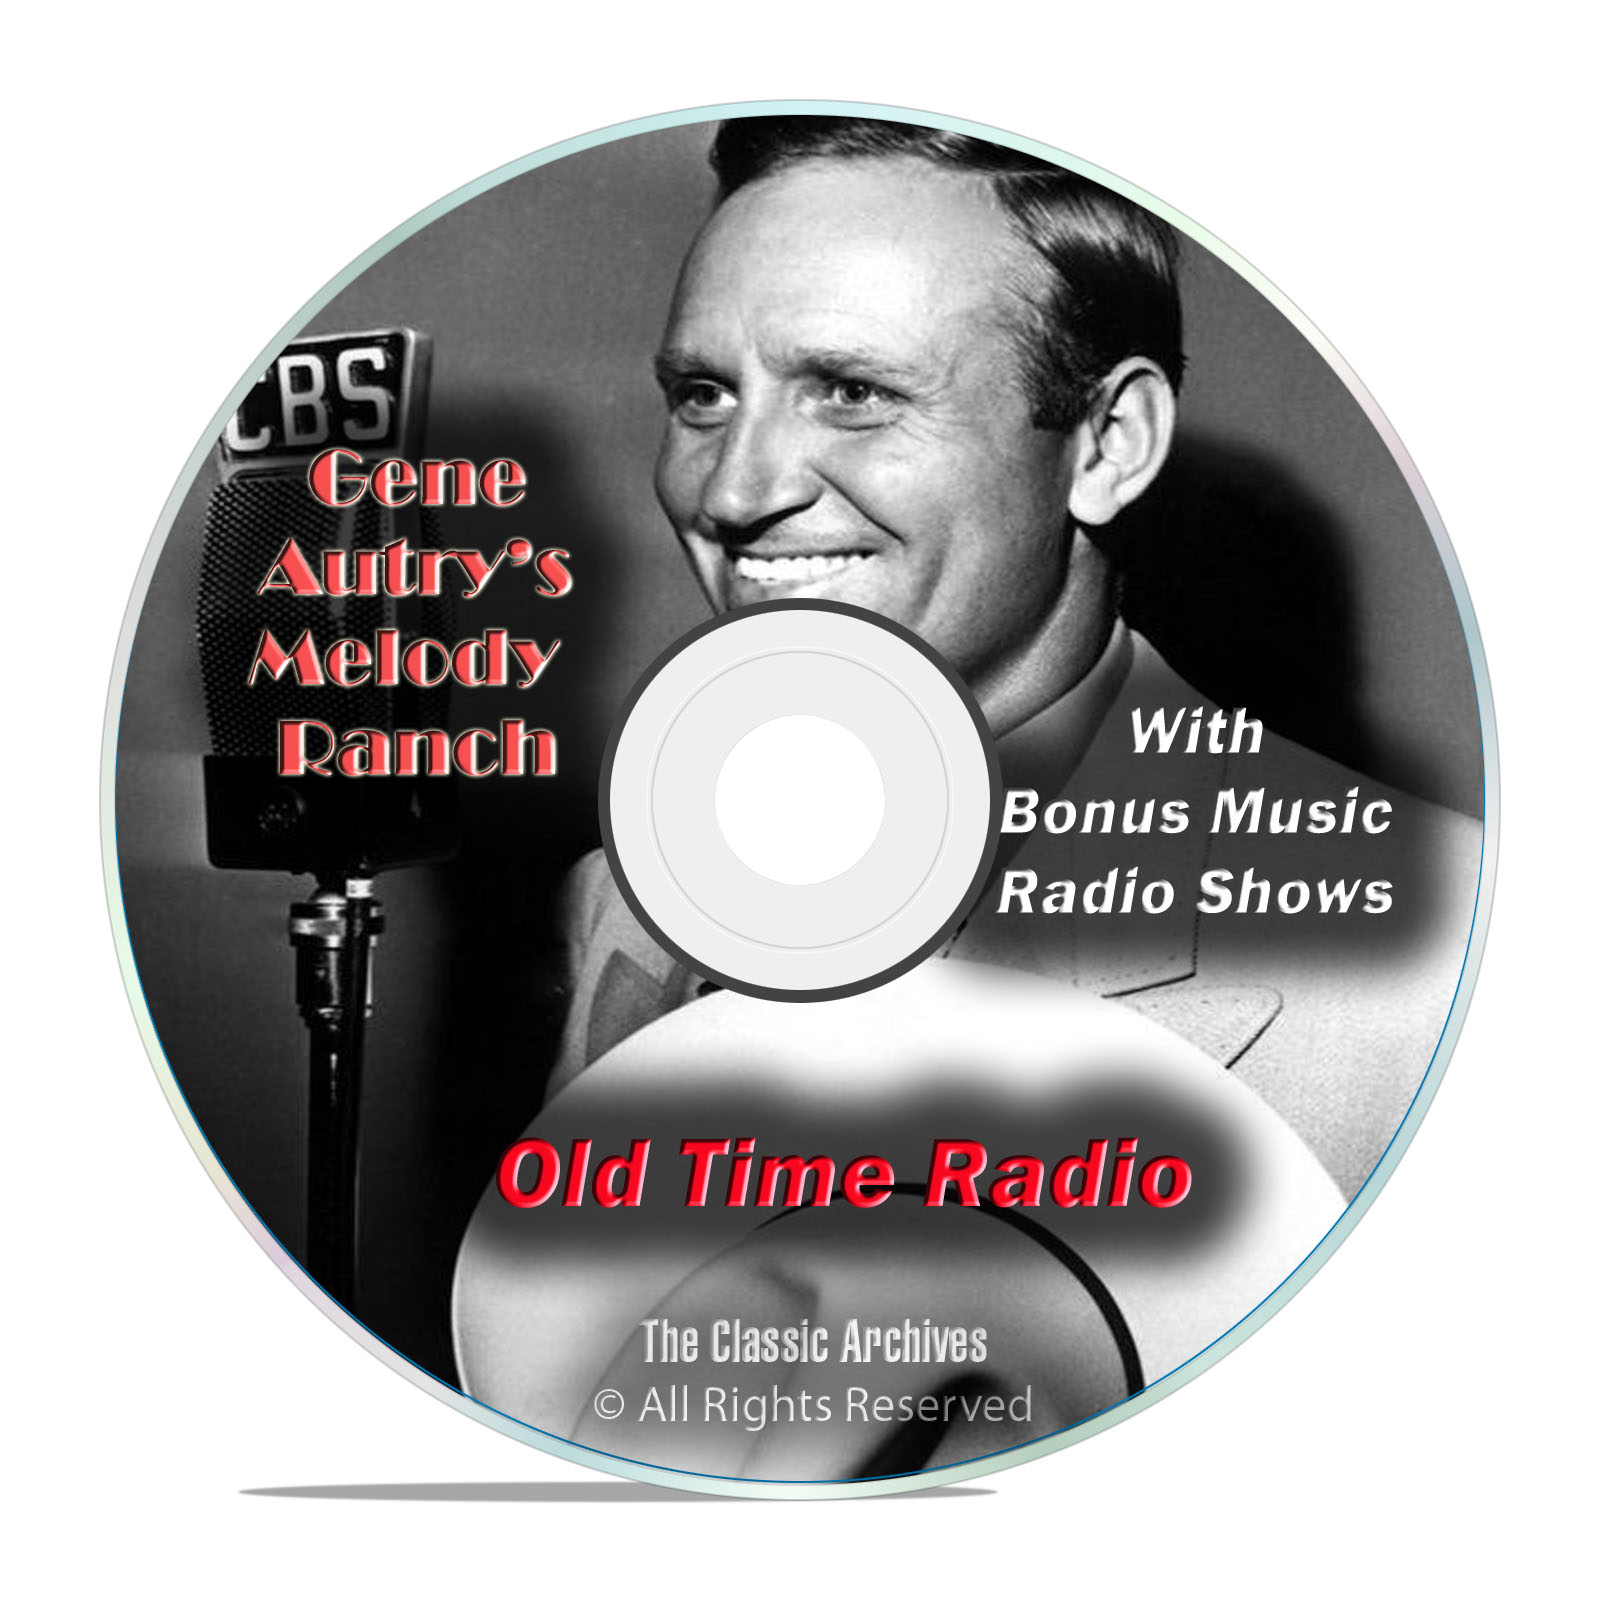 Gene Autry's Melody Ranch, 422 Old Time Radio Music Shows, OTR mp3 DVD